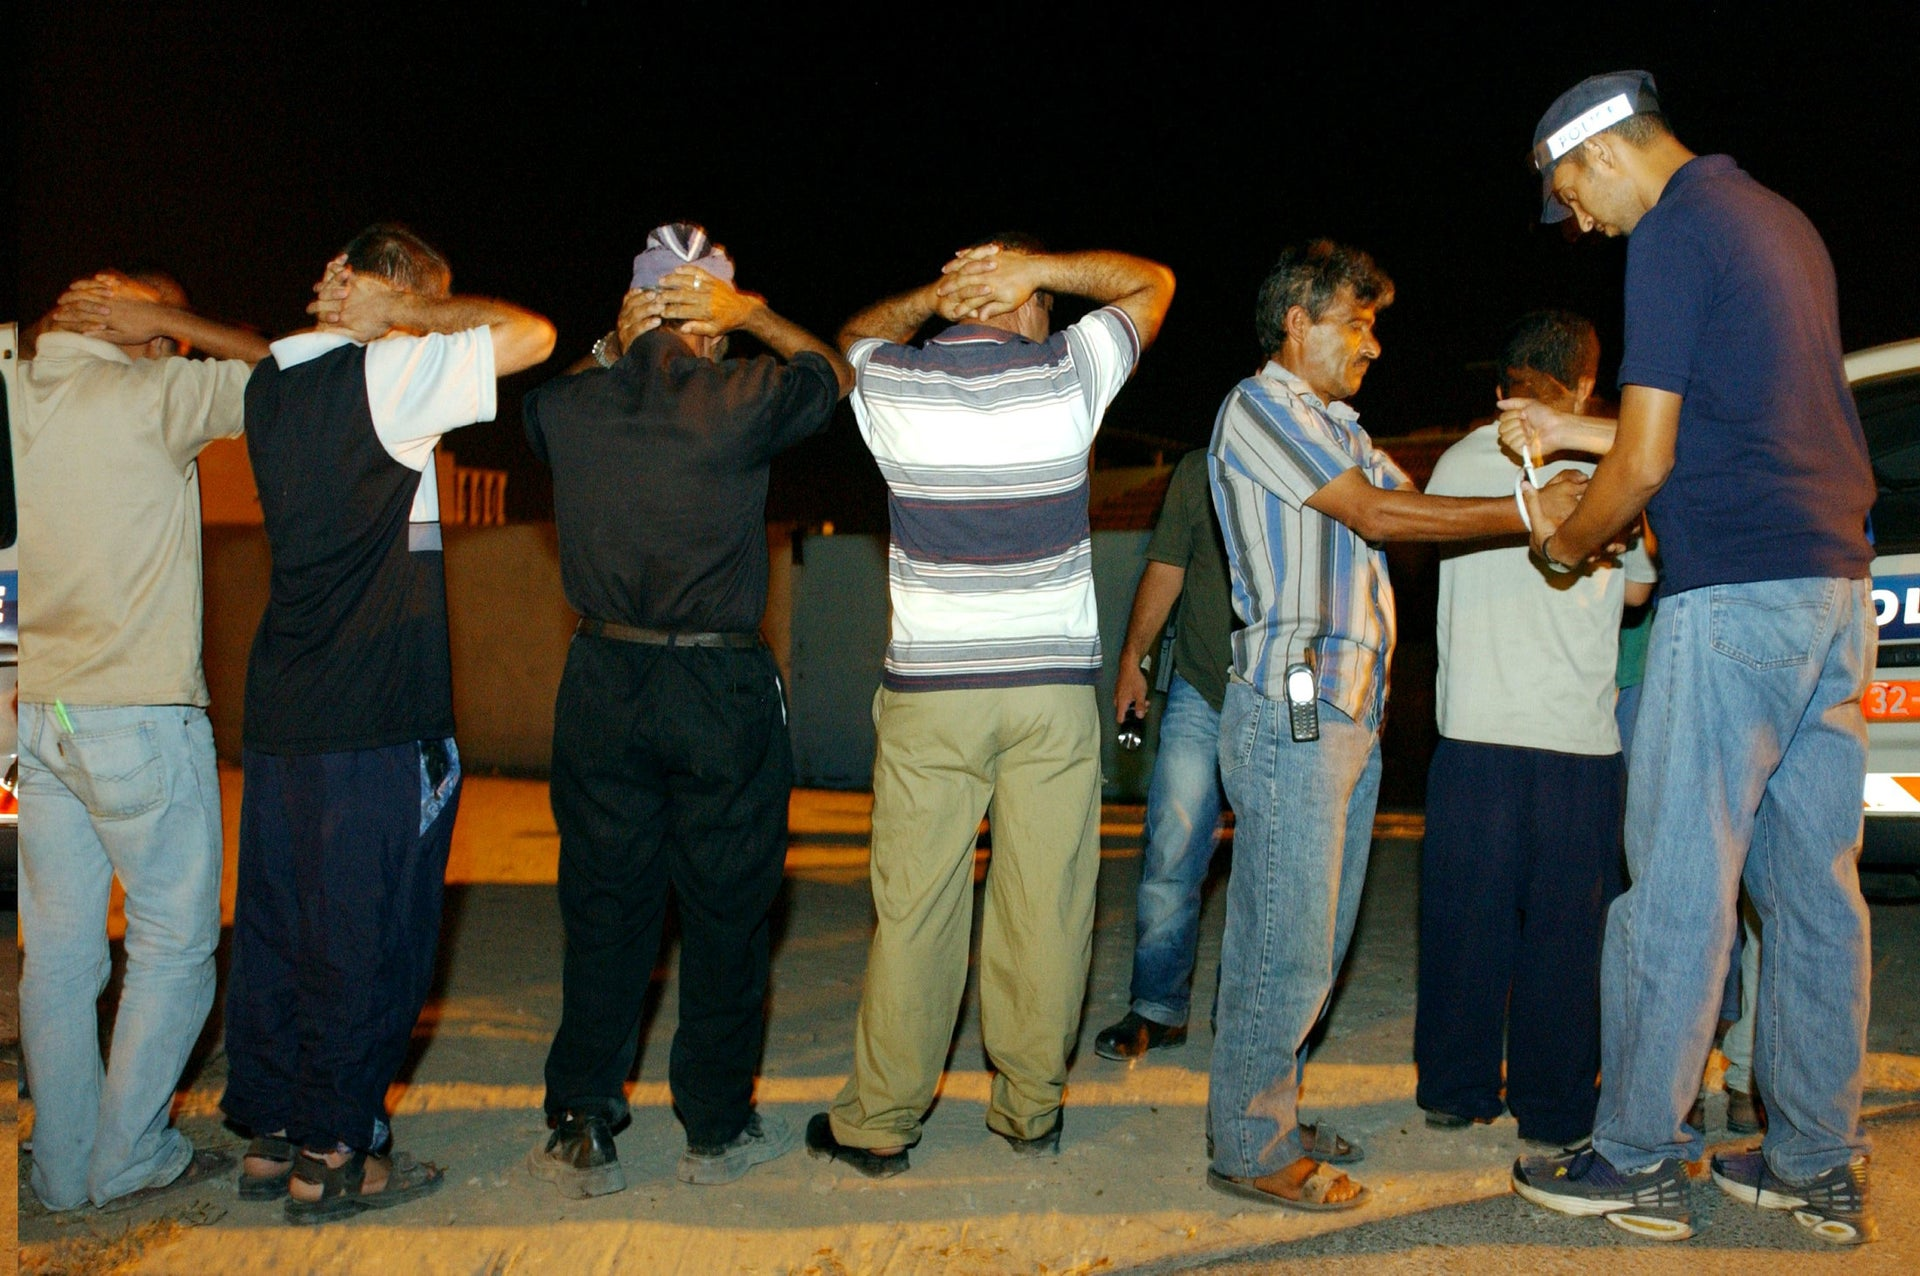 Palestinians without work permits arrested in Lod in central Israel in 2002